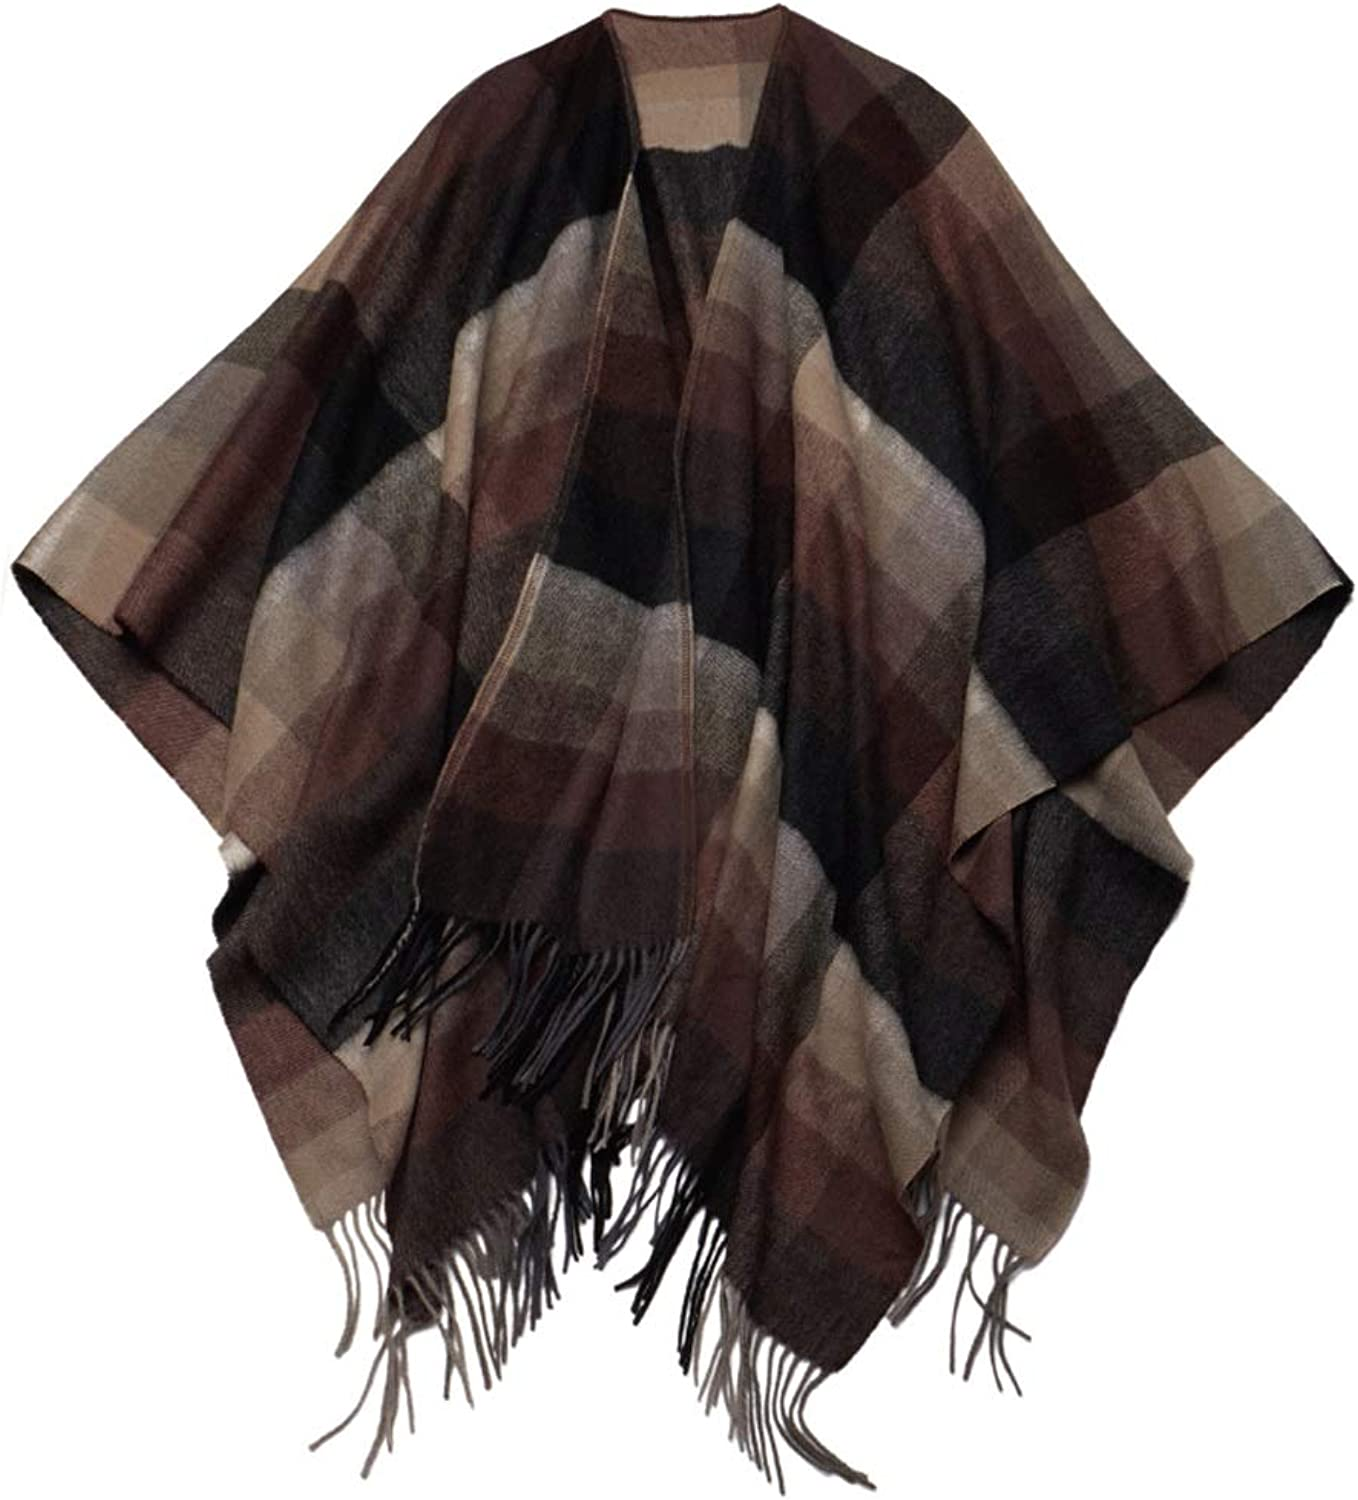 CHX Scarf Winter Keep Warm Woman Thicken Cloak Shawl Blanket 170cm×130cm V